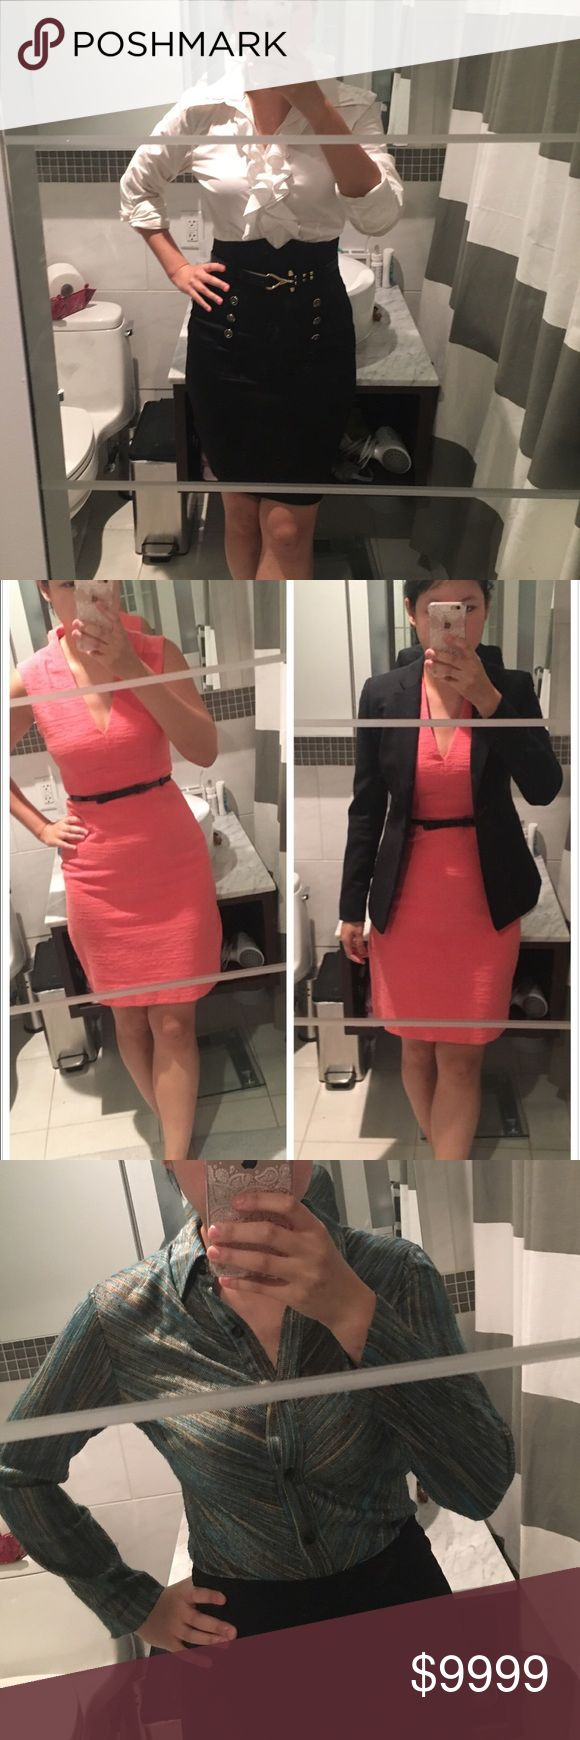 Kate Spade coral sheath dress Comes with black belt. Gold zipper in the back. Needs dry cleaning for now. If you want me to dry clean for you, price of dry cleaning will be added to price kate spade Dresses